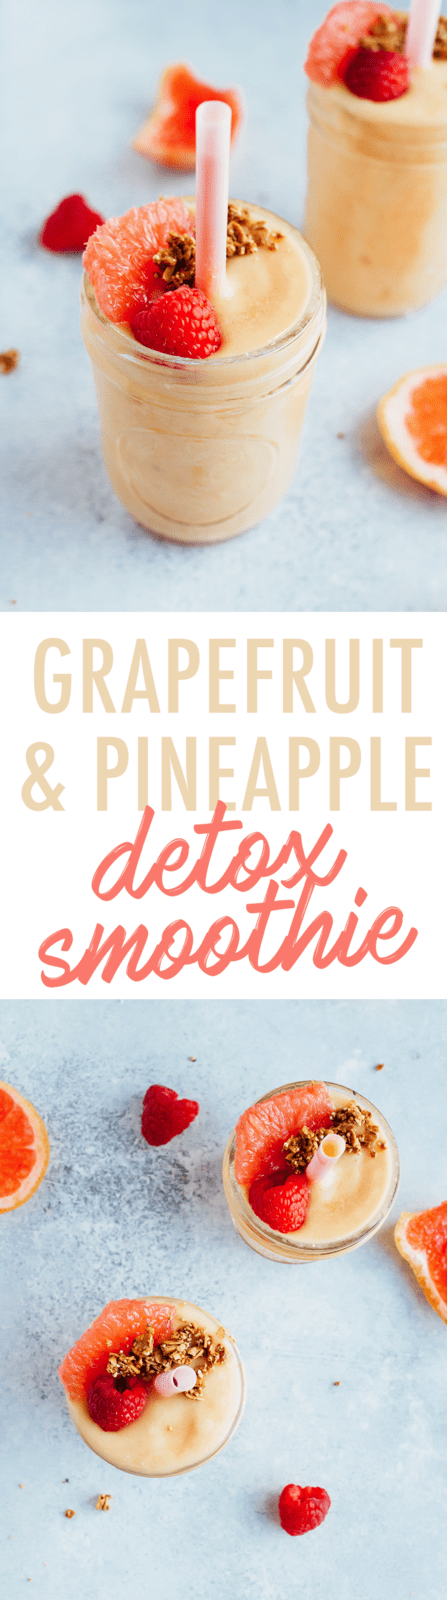 Banish bloating and boost your metabolism with this delicious Grapefruit DETOX Smoothie